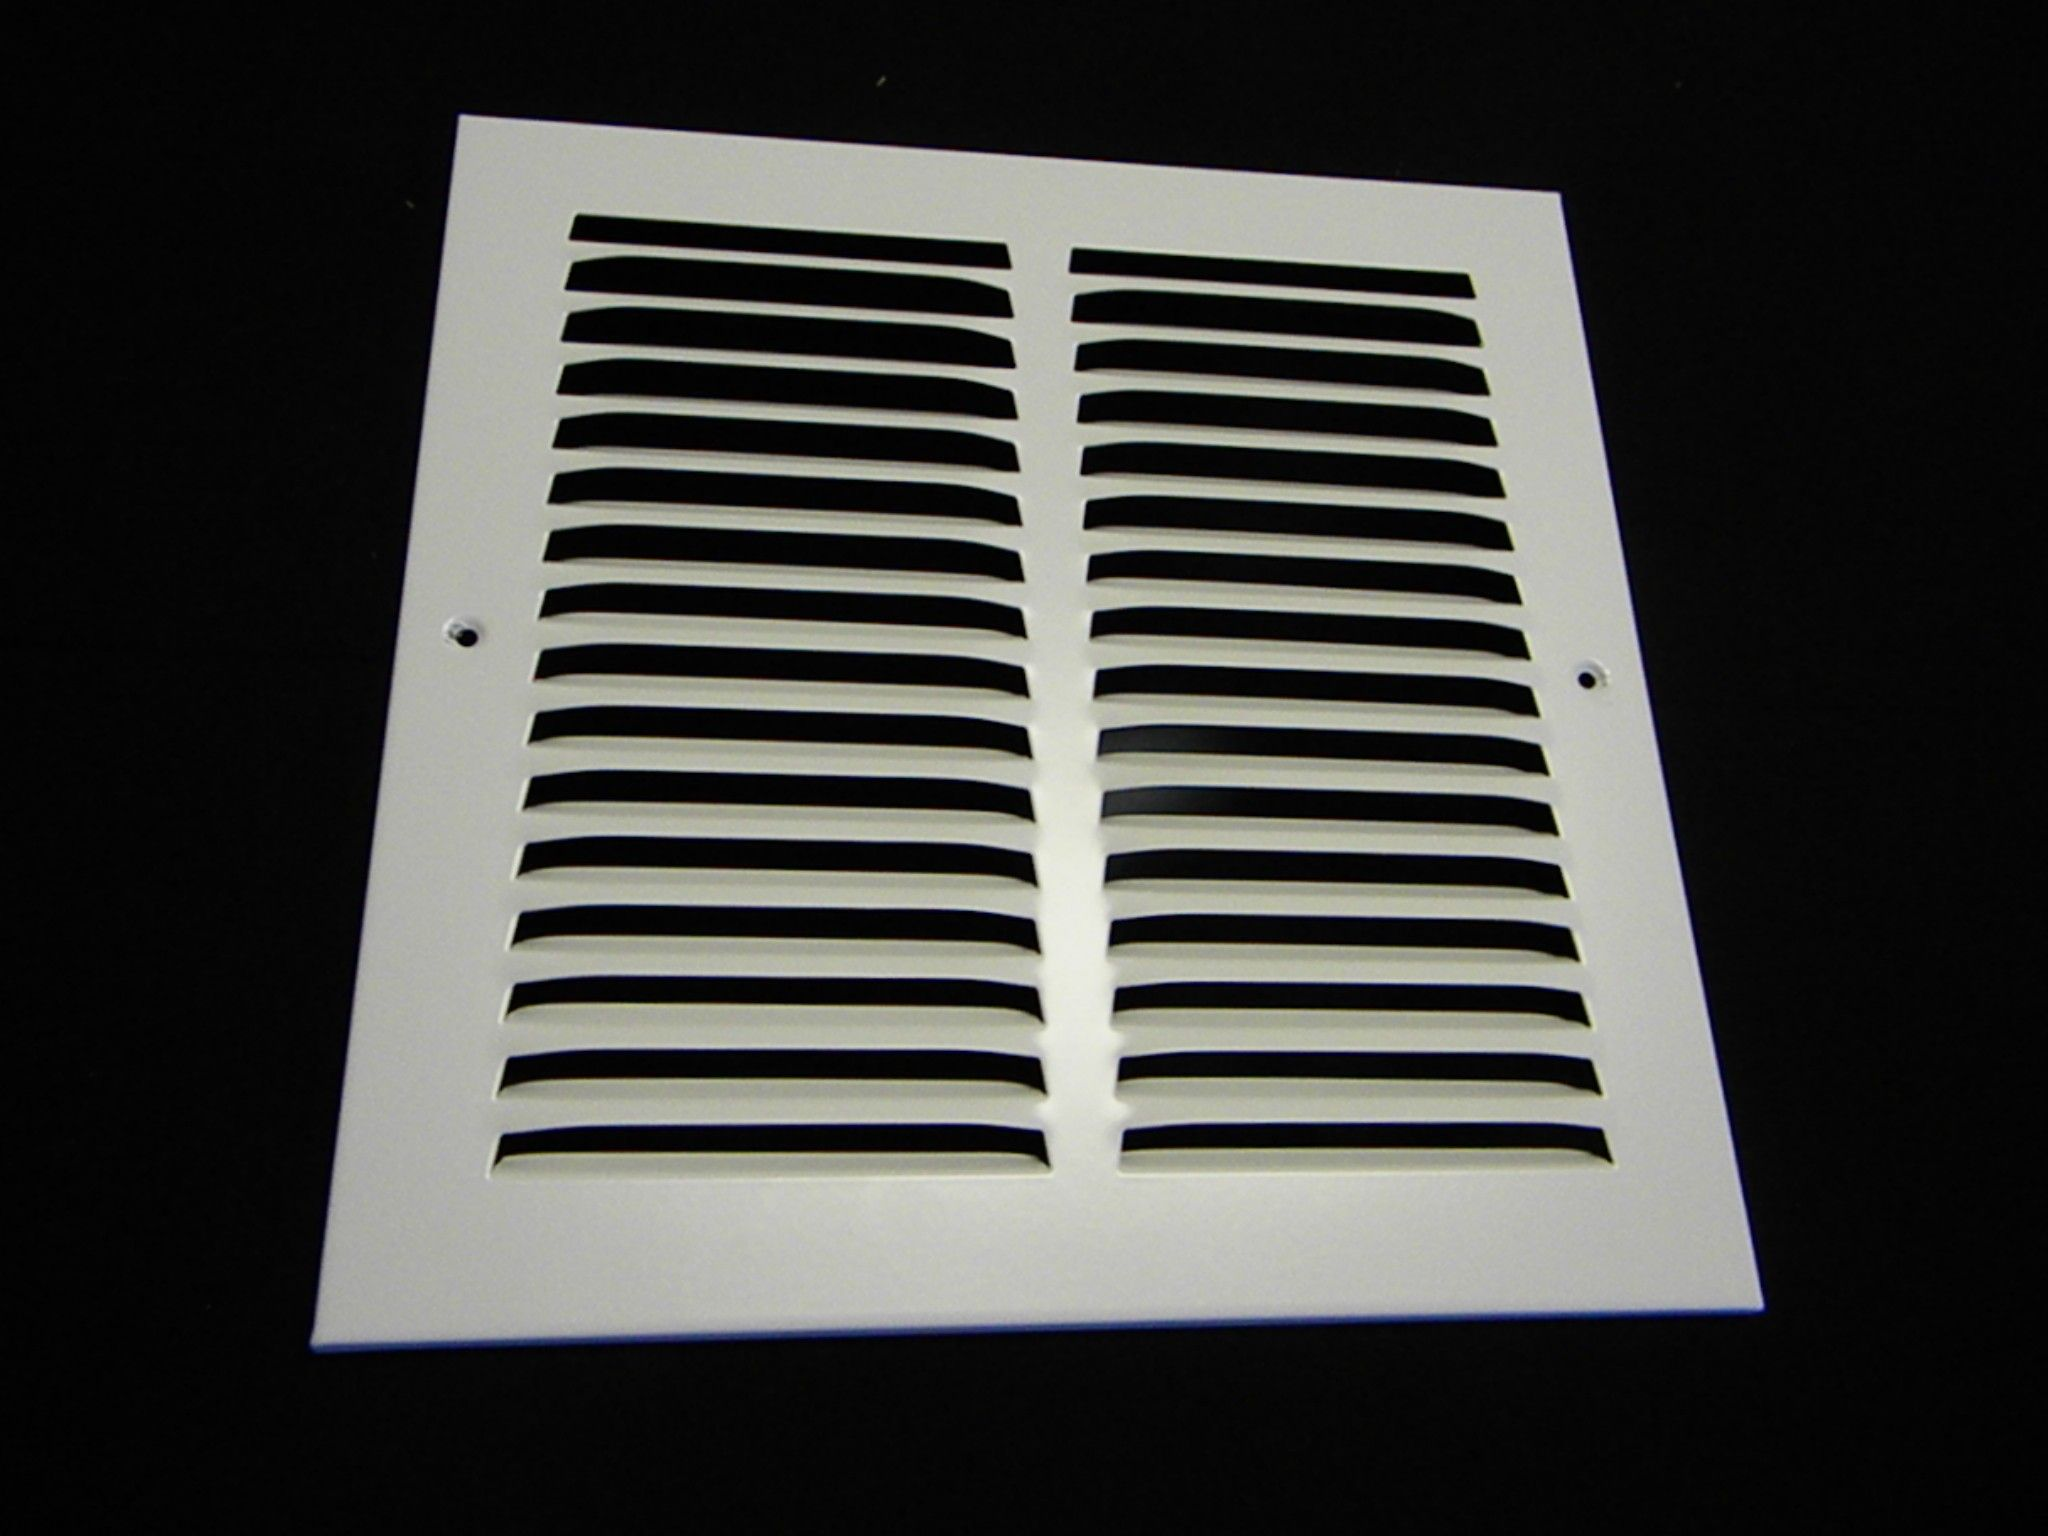 24x14 Return Stamped Grille